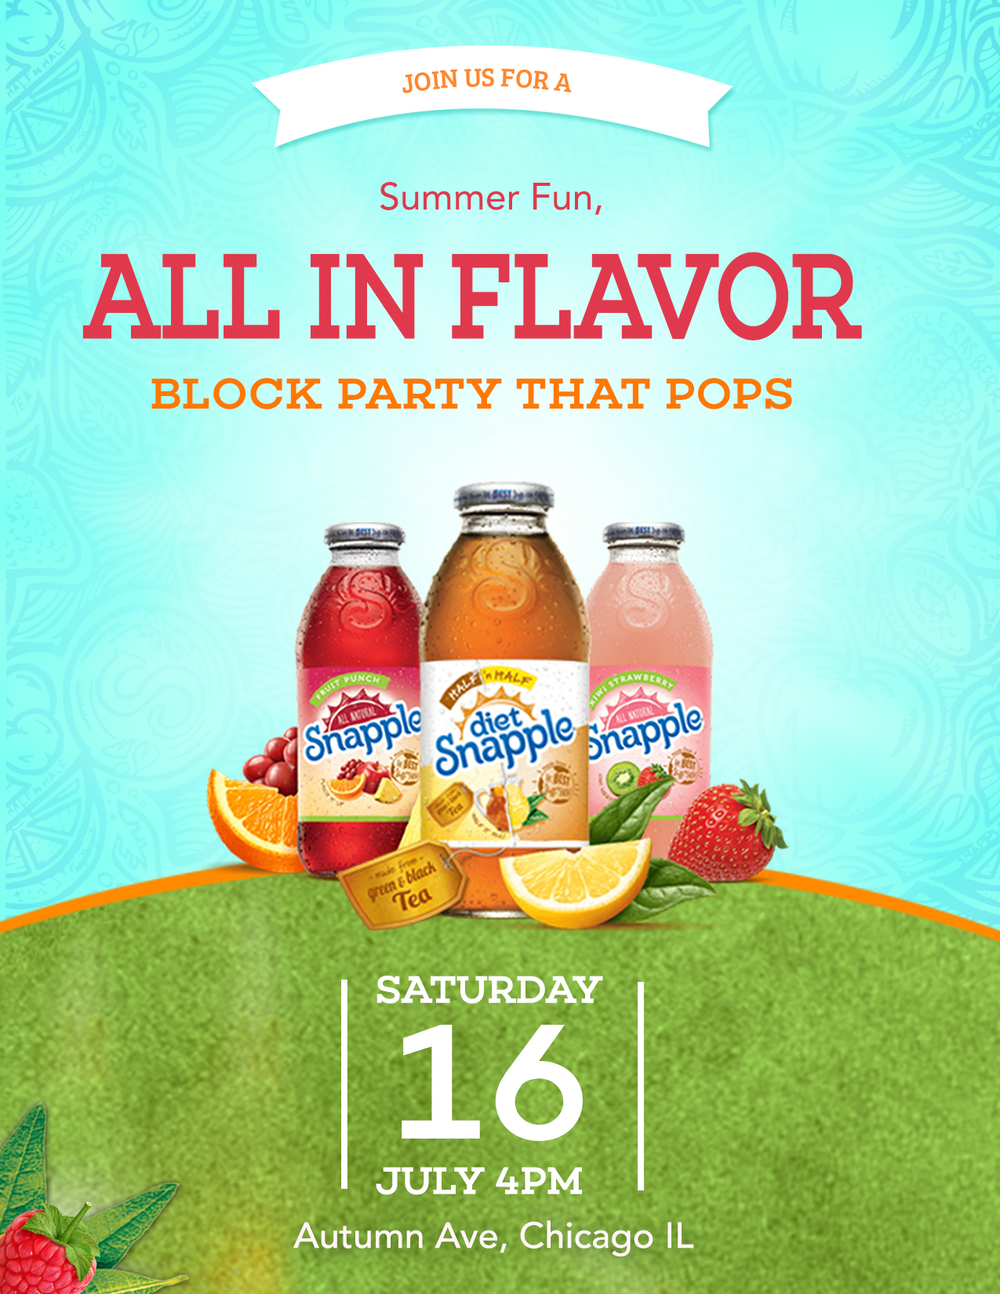 BlockParty_Flyer2.jpg